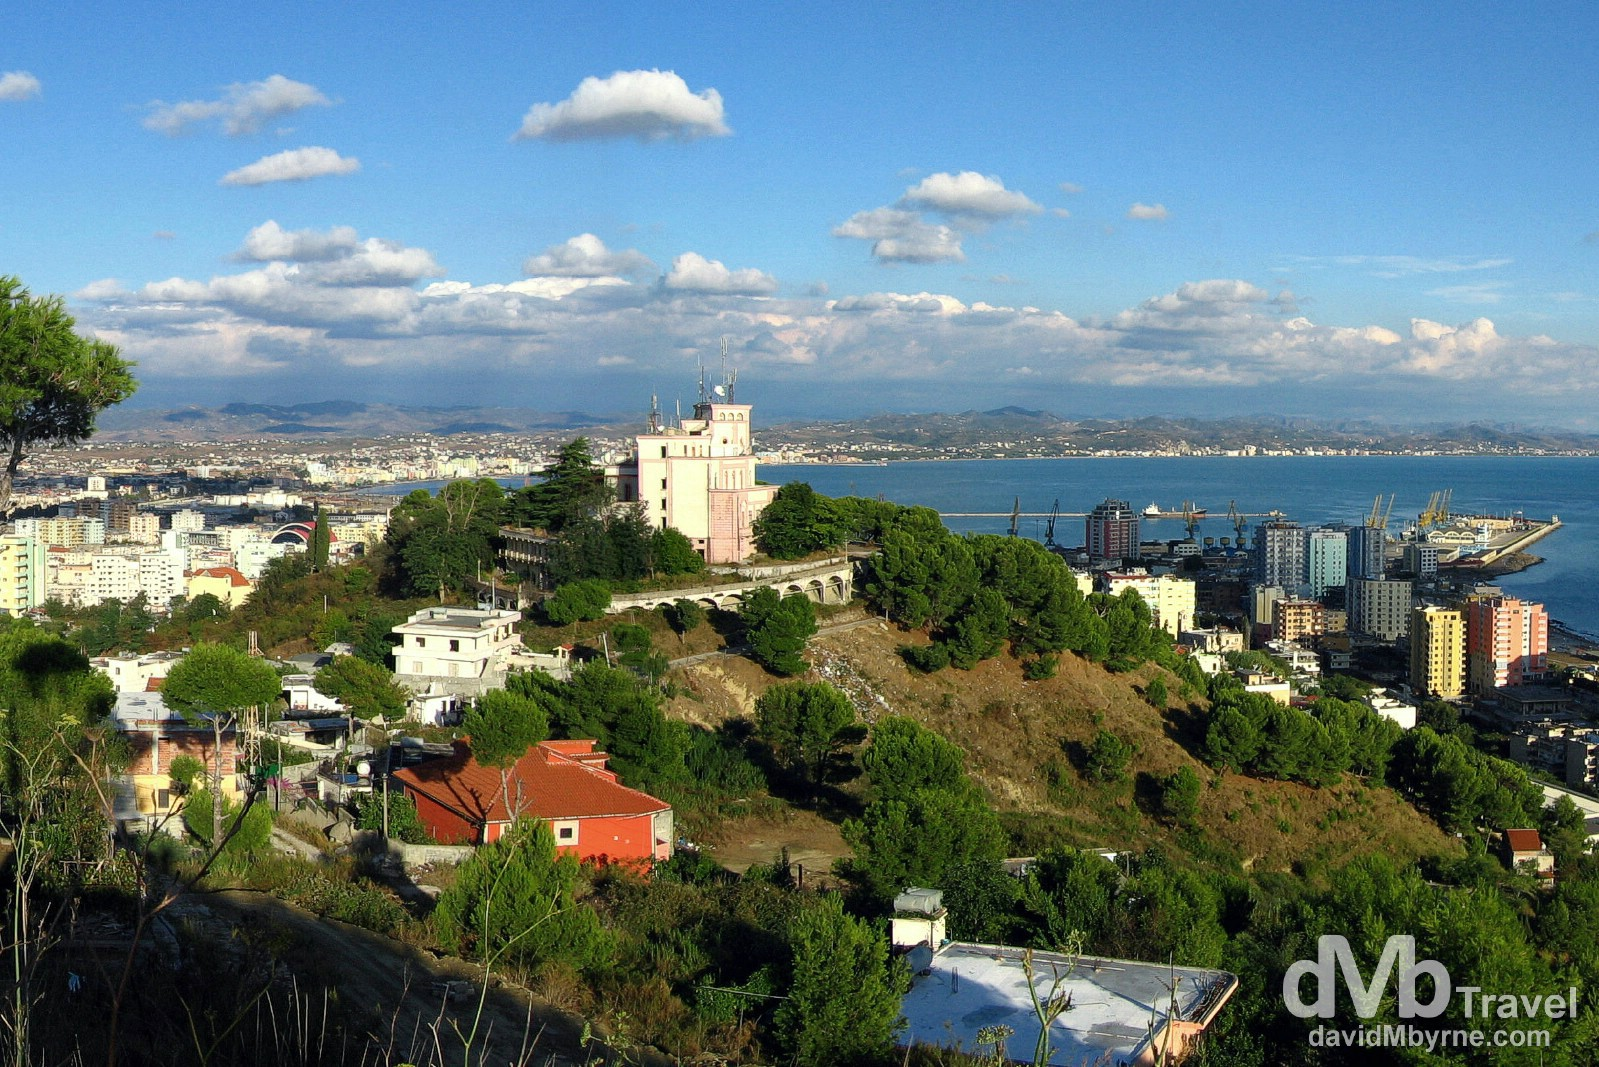 The port of Durres, Albania's second city, from a viewpoint overlooking the city. September 7th, 2007.